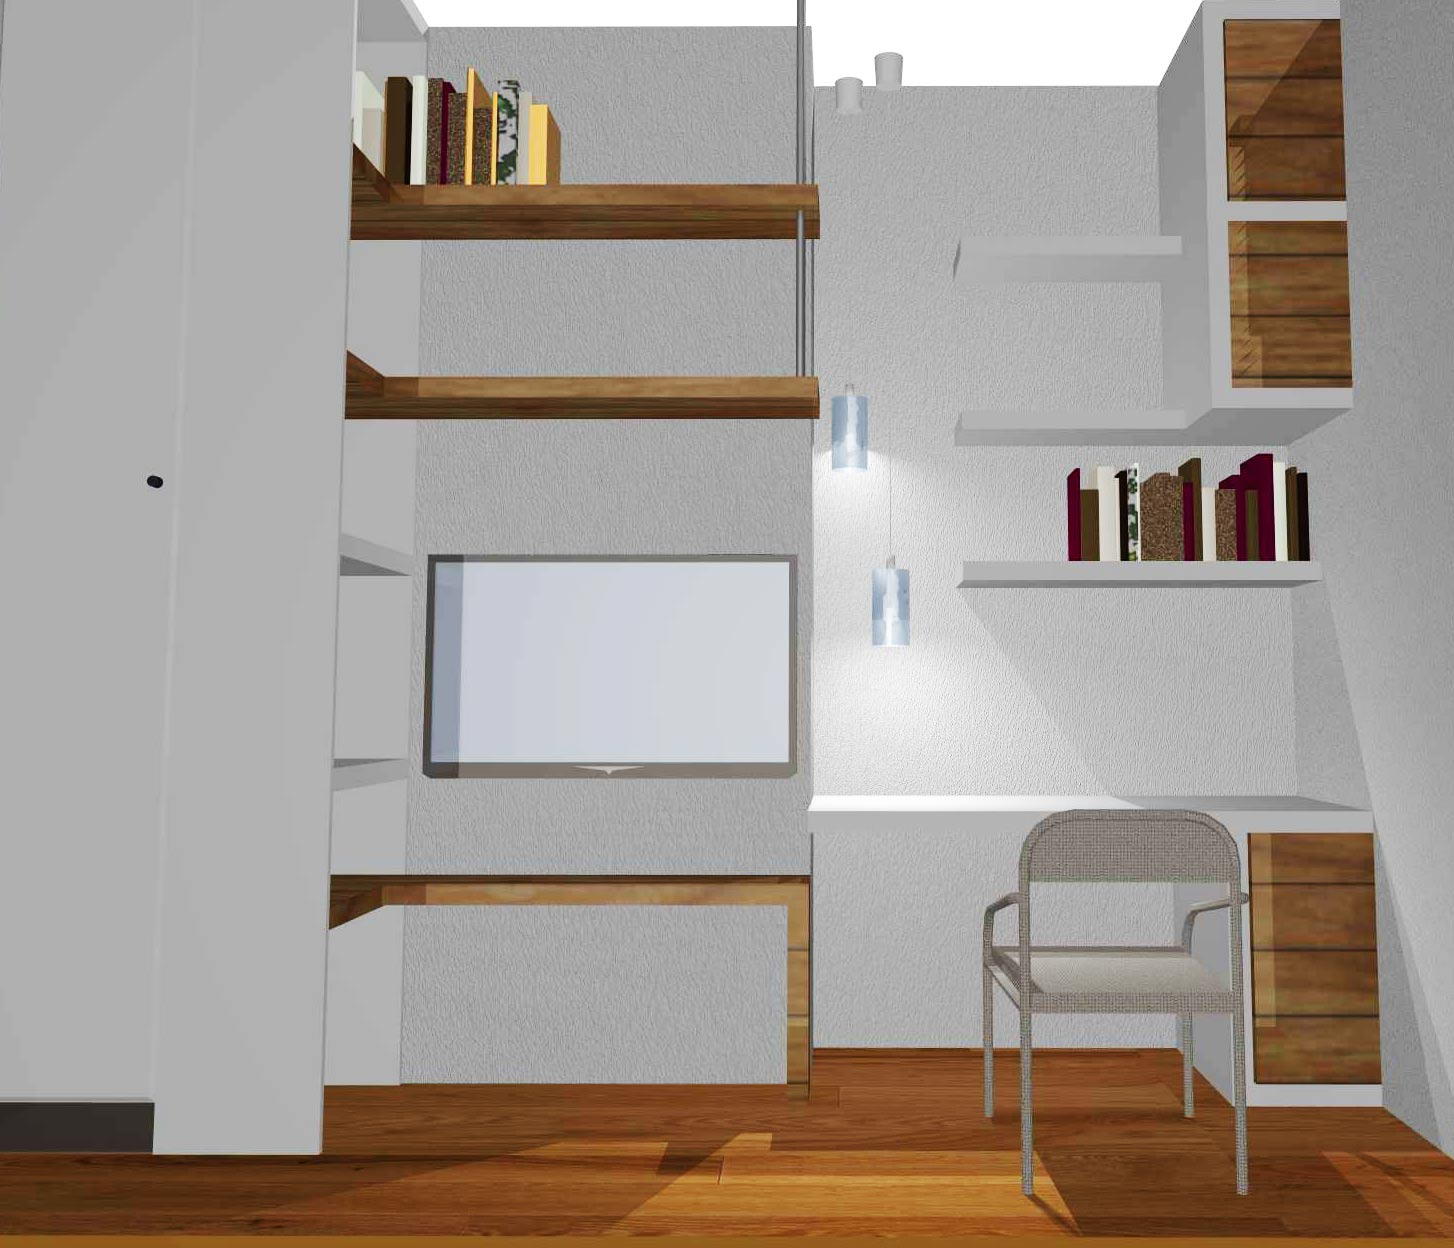 & Working Space-Apartment In Voula Athens